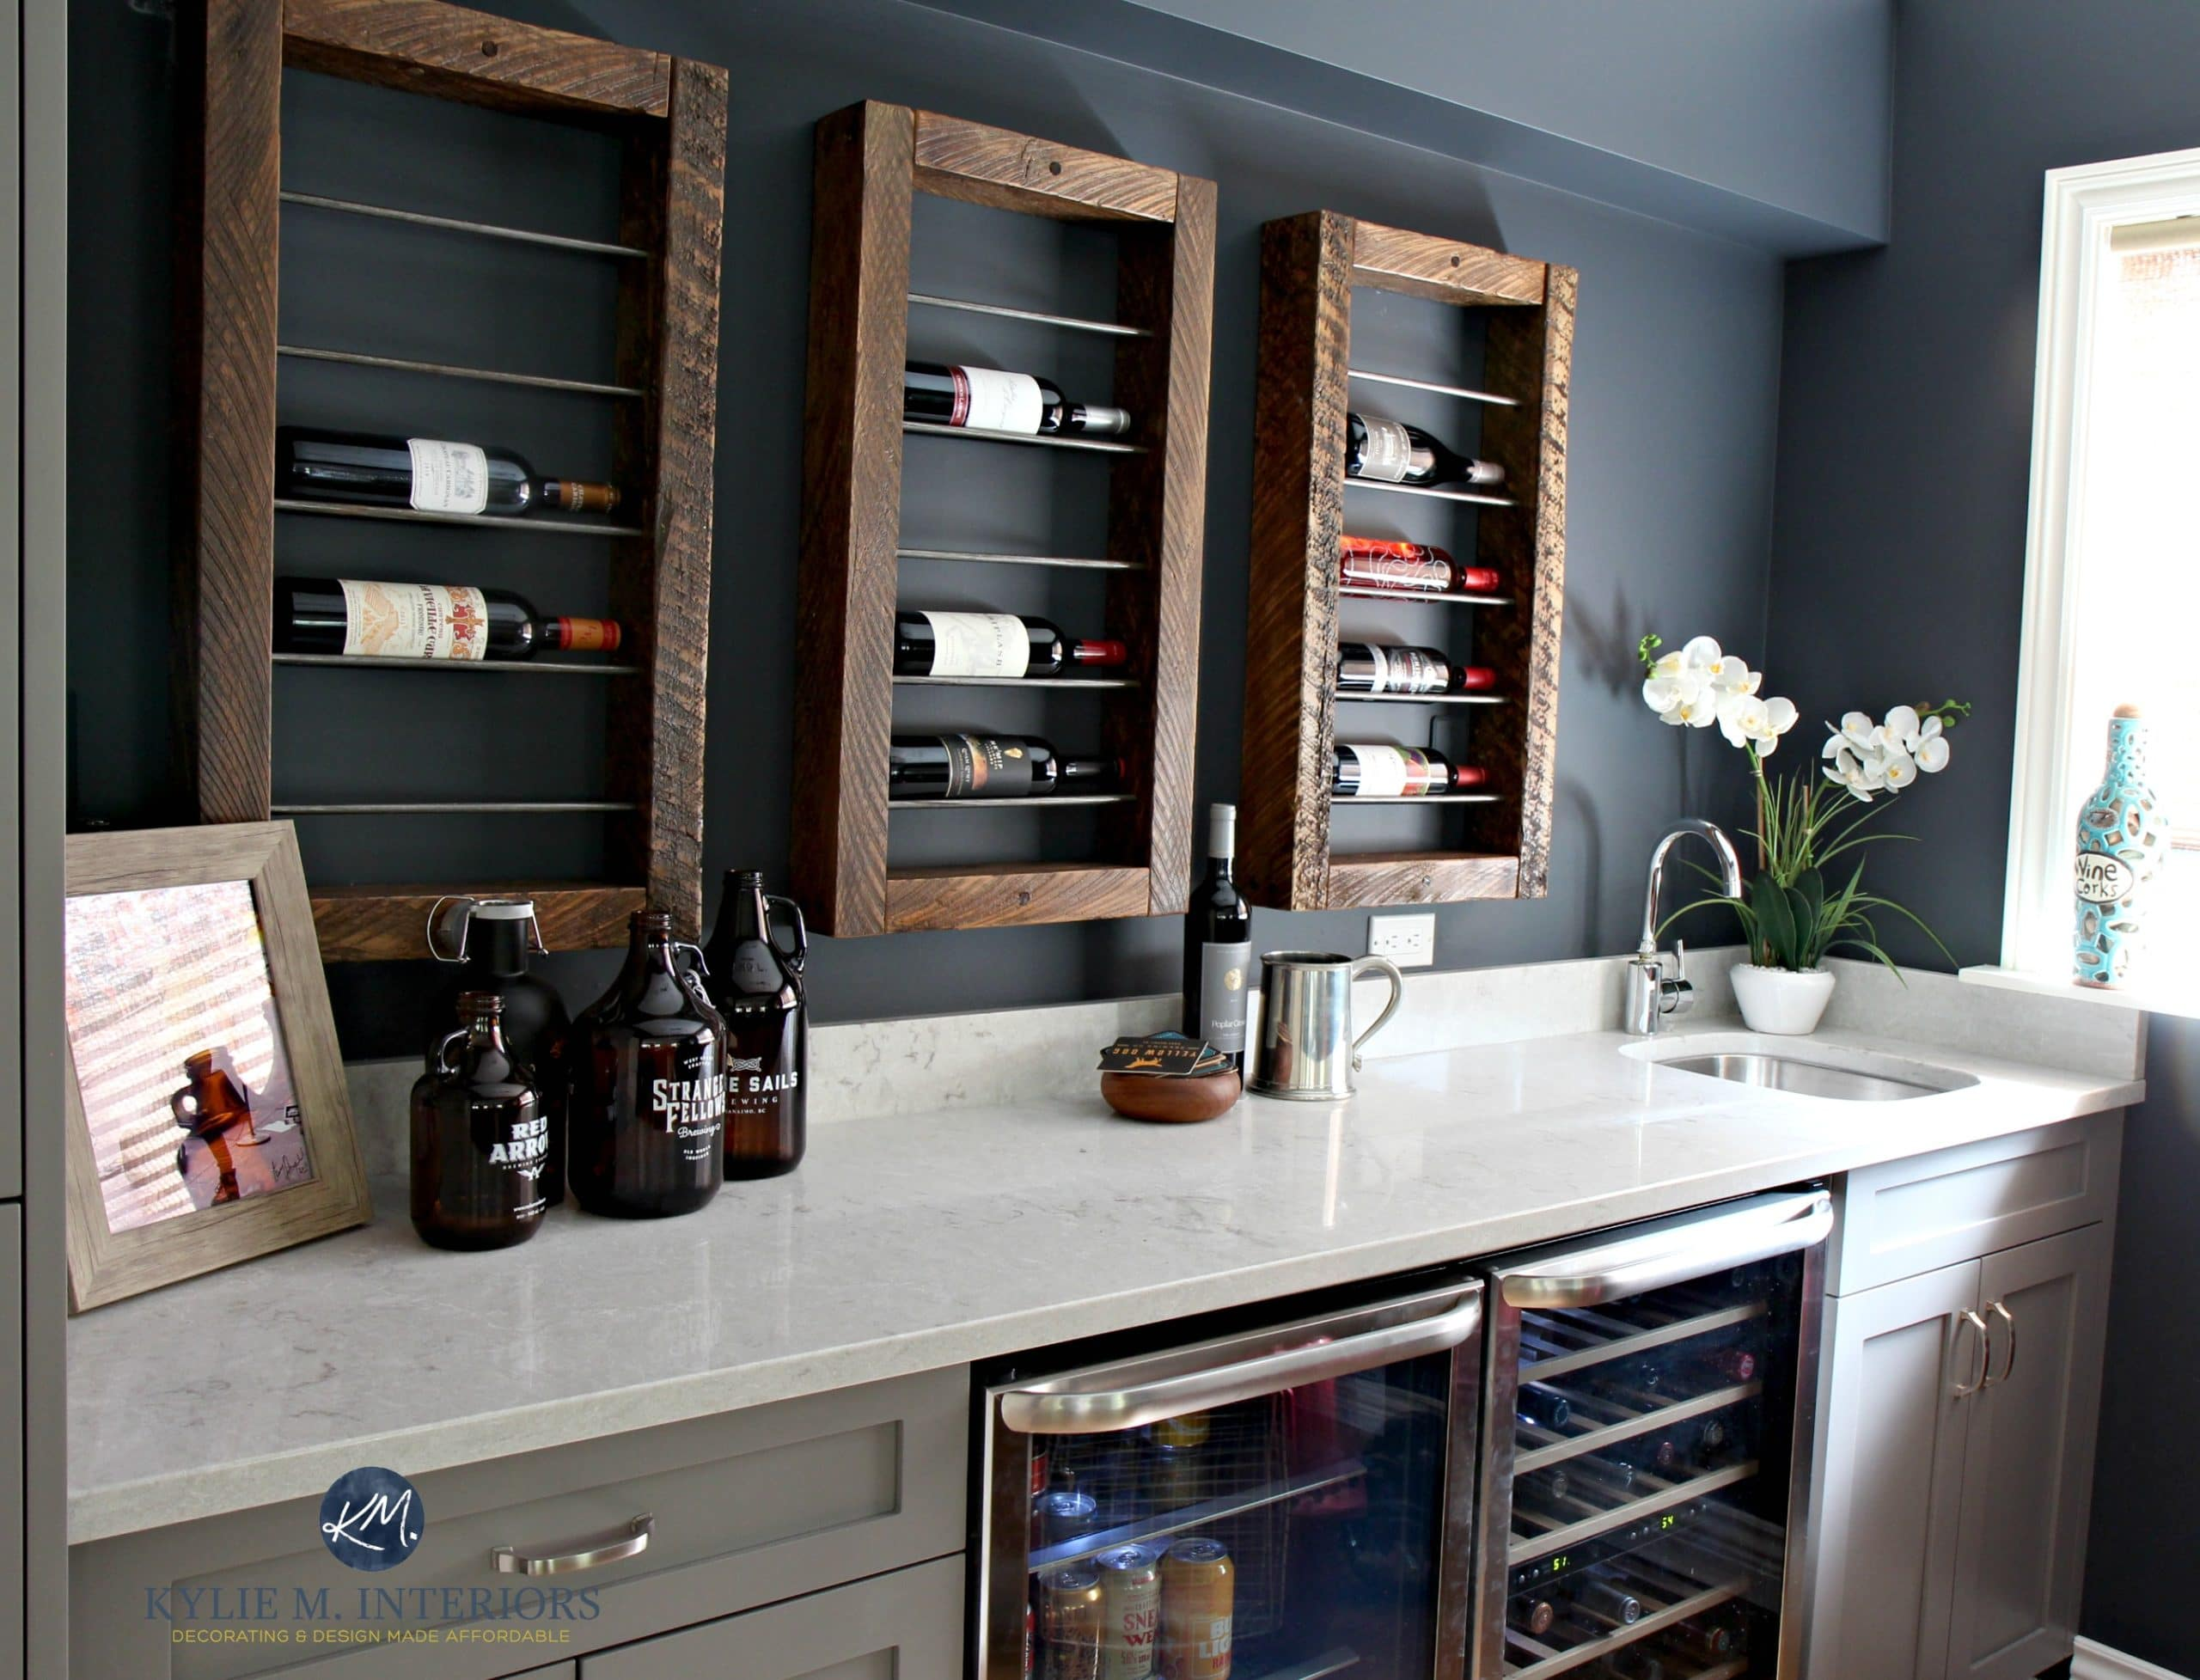 Sherwin-williams Countertop Paint Home Bar With Wine Display And Storage Beer And Wine Fridge